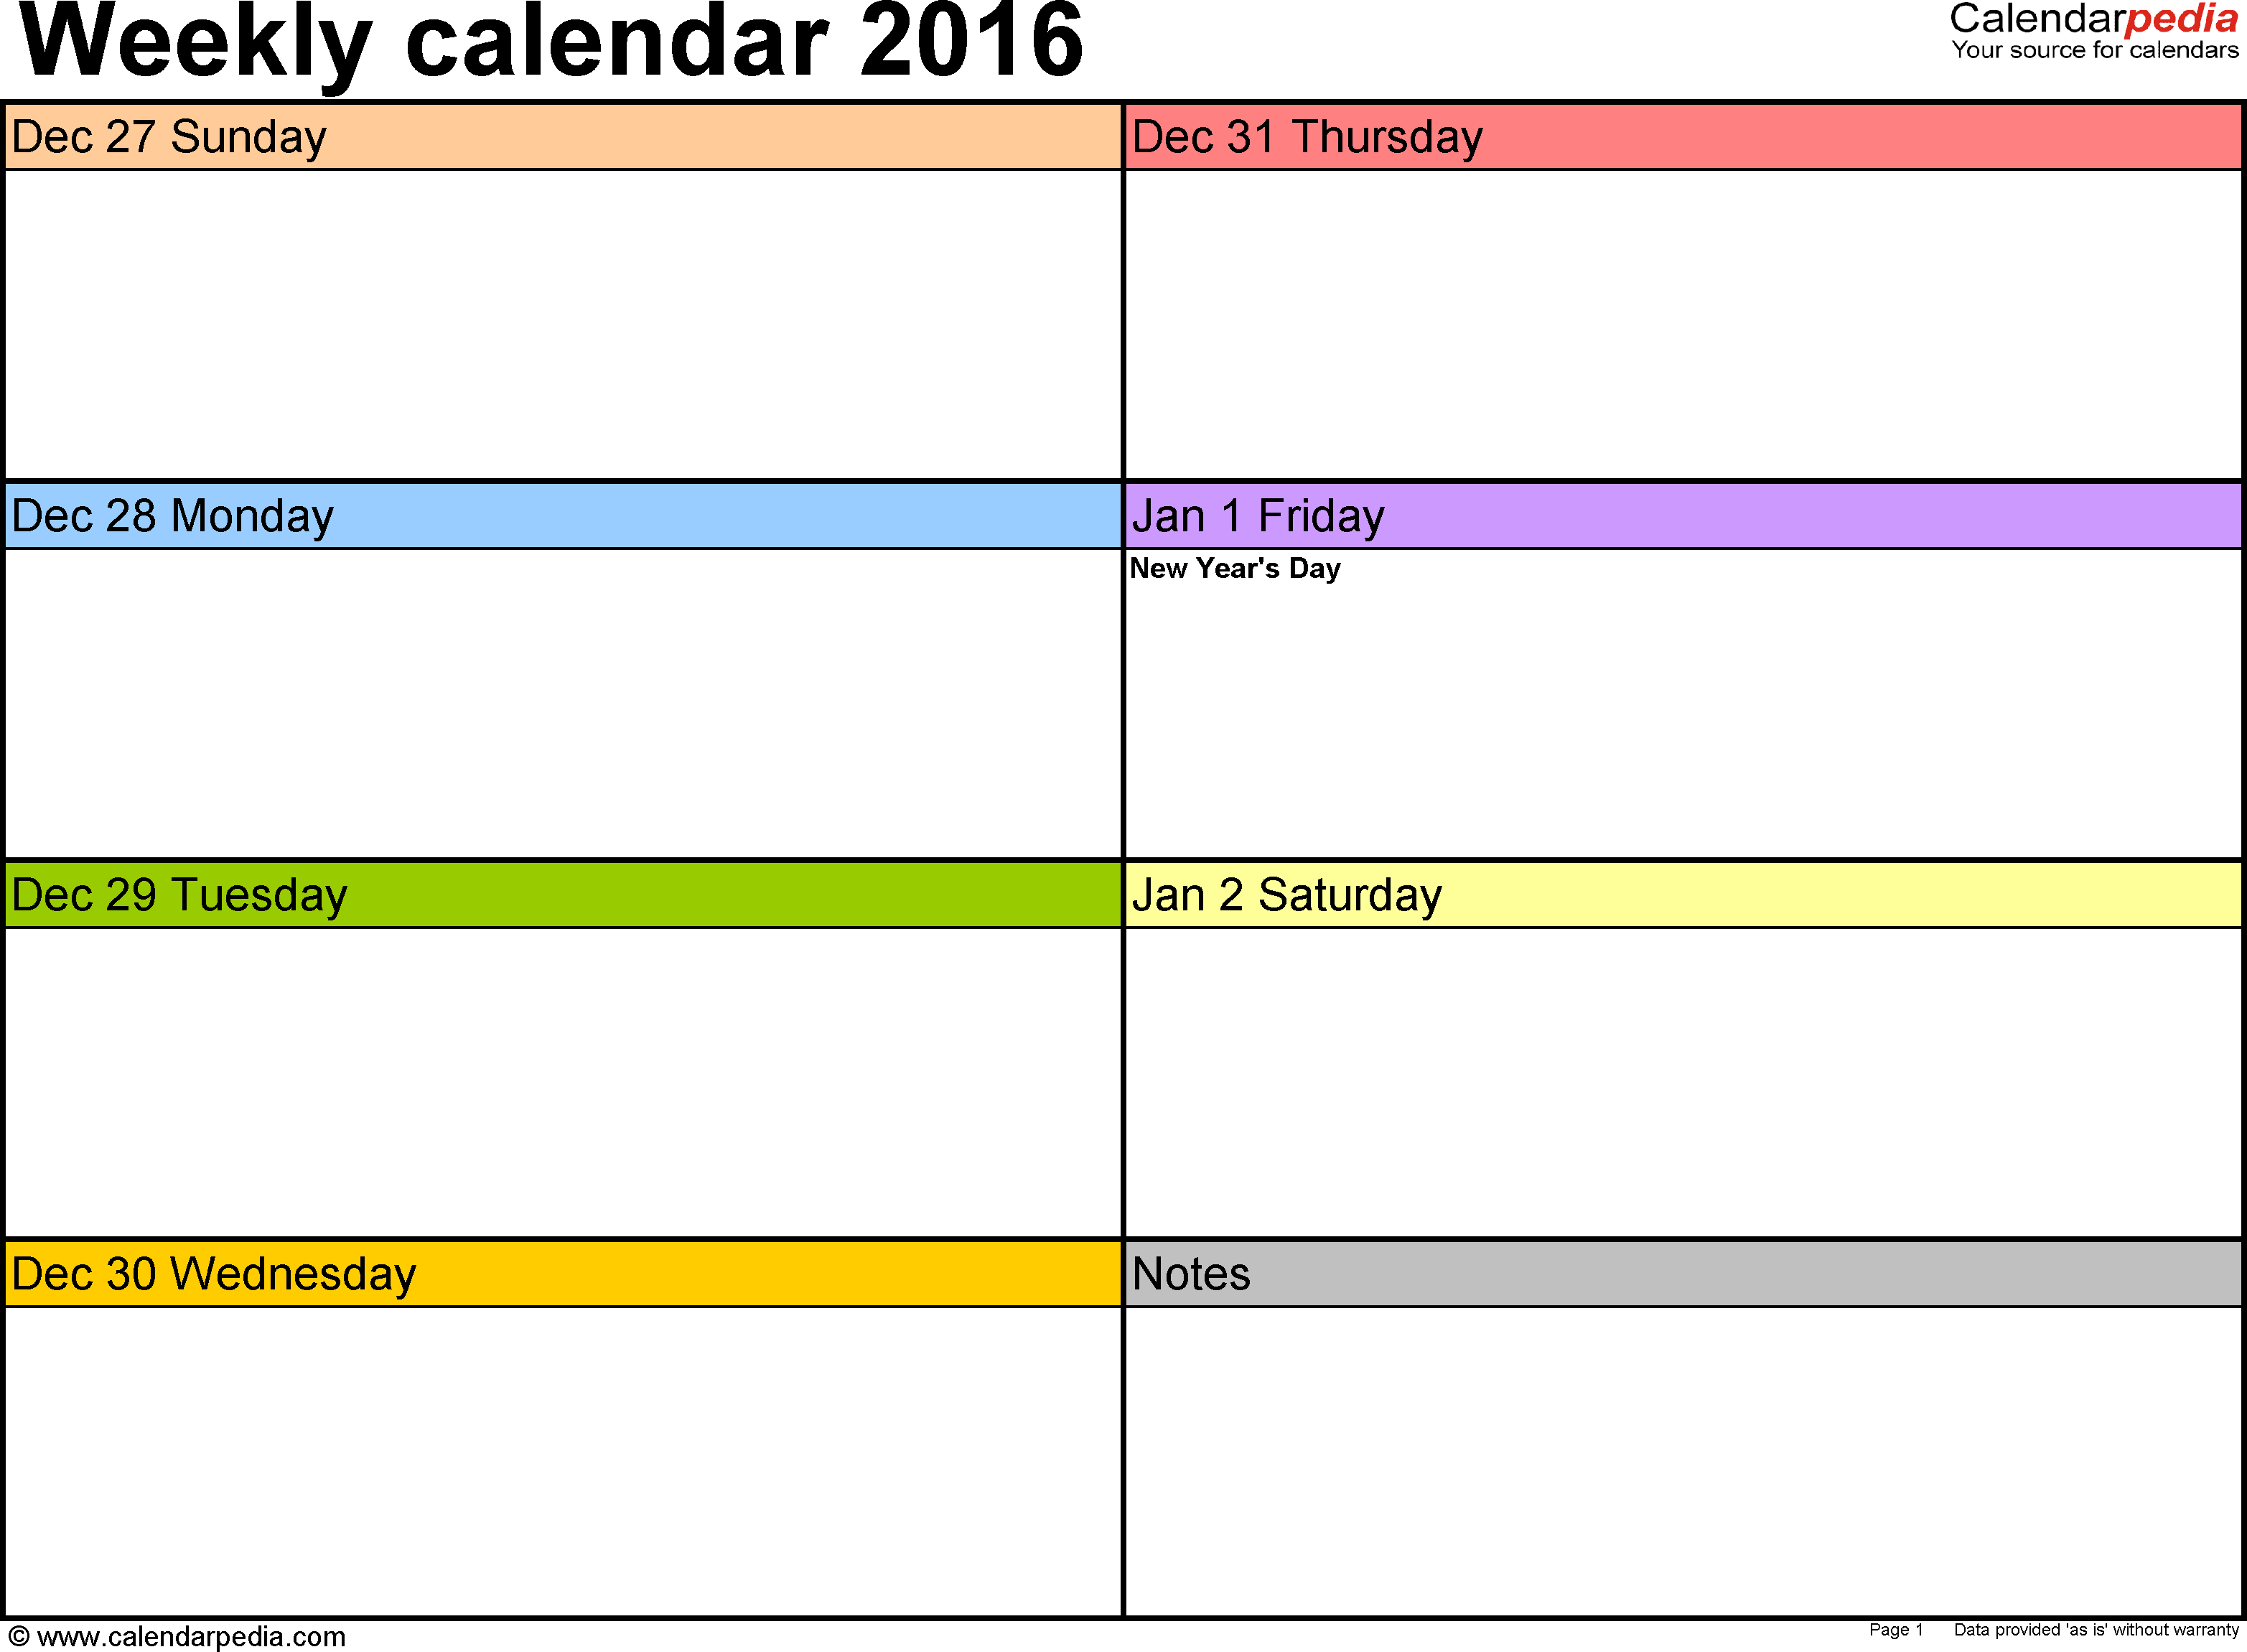 Weekly Calendar 2016: Template For Pdf Version 6, Landscape